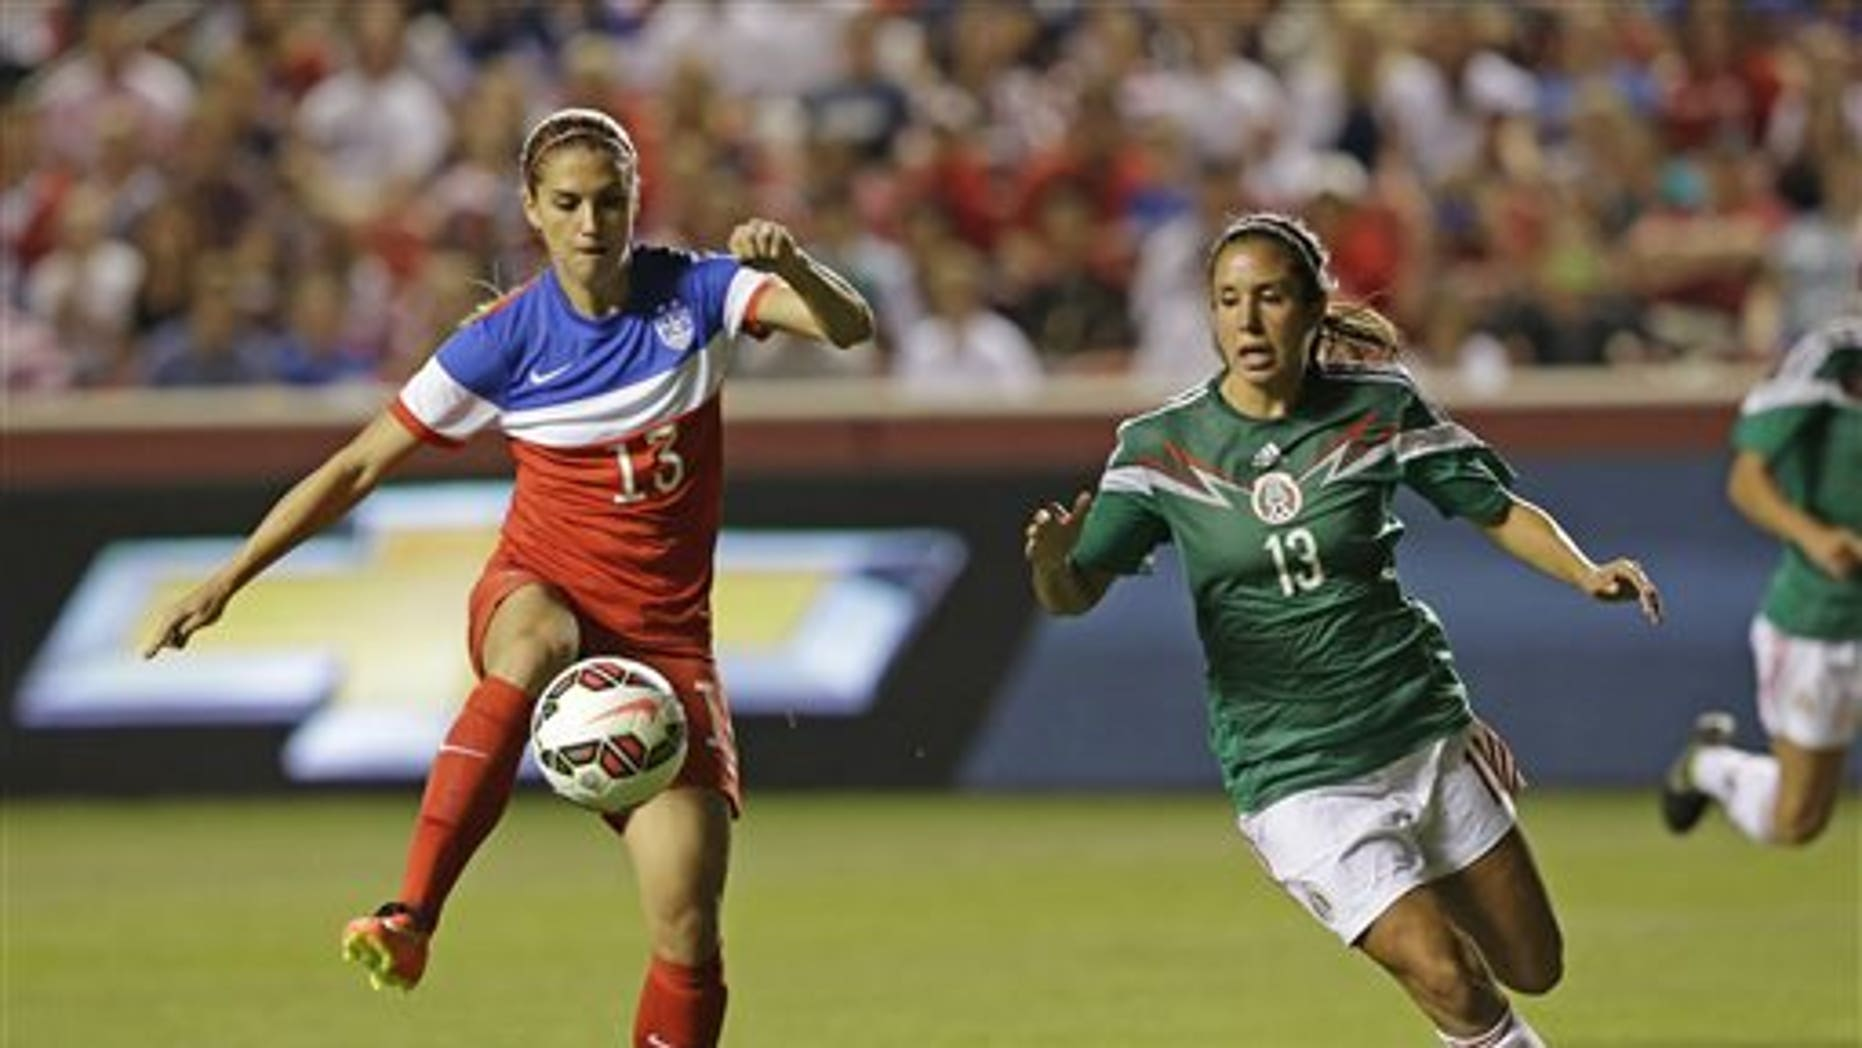 United States' forward Alex Morgan (13) scores as Mexico'a Bianca Sierra (13) defends in the first half of an international friendly game at Rio Tinto Stadium, Saturday, Sept. 13, 2014, in Sandy, Utah. (AP Photo/Rick Bowmer)